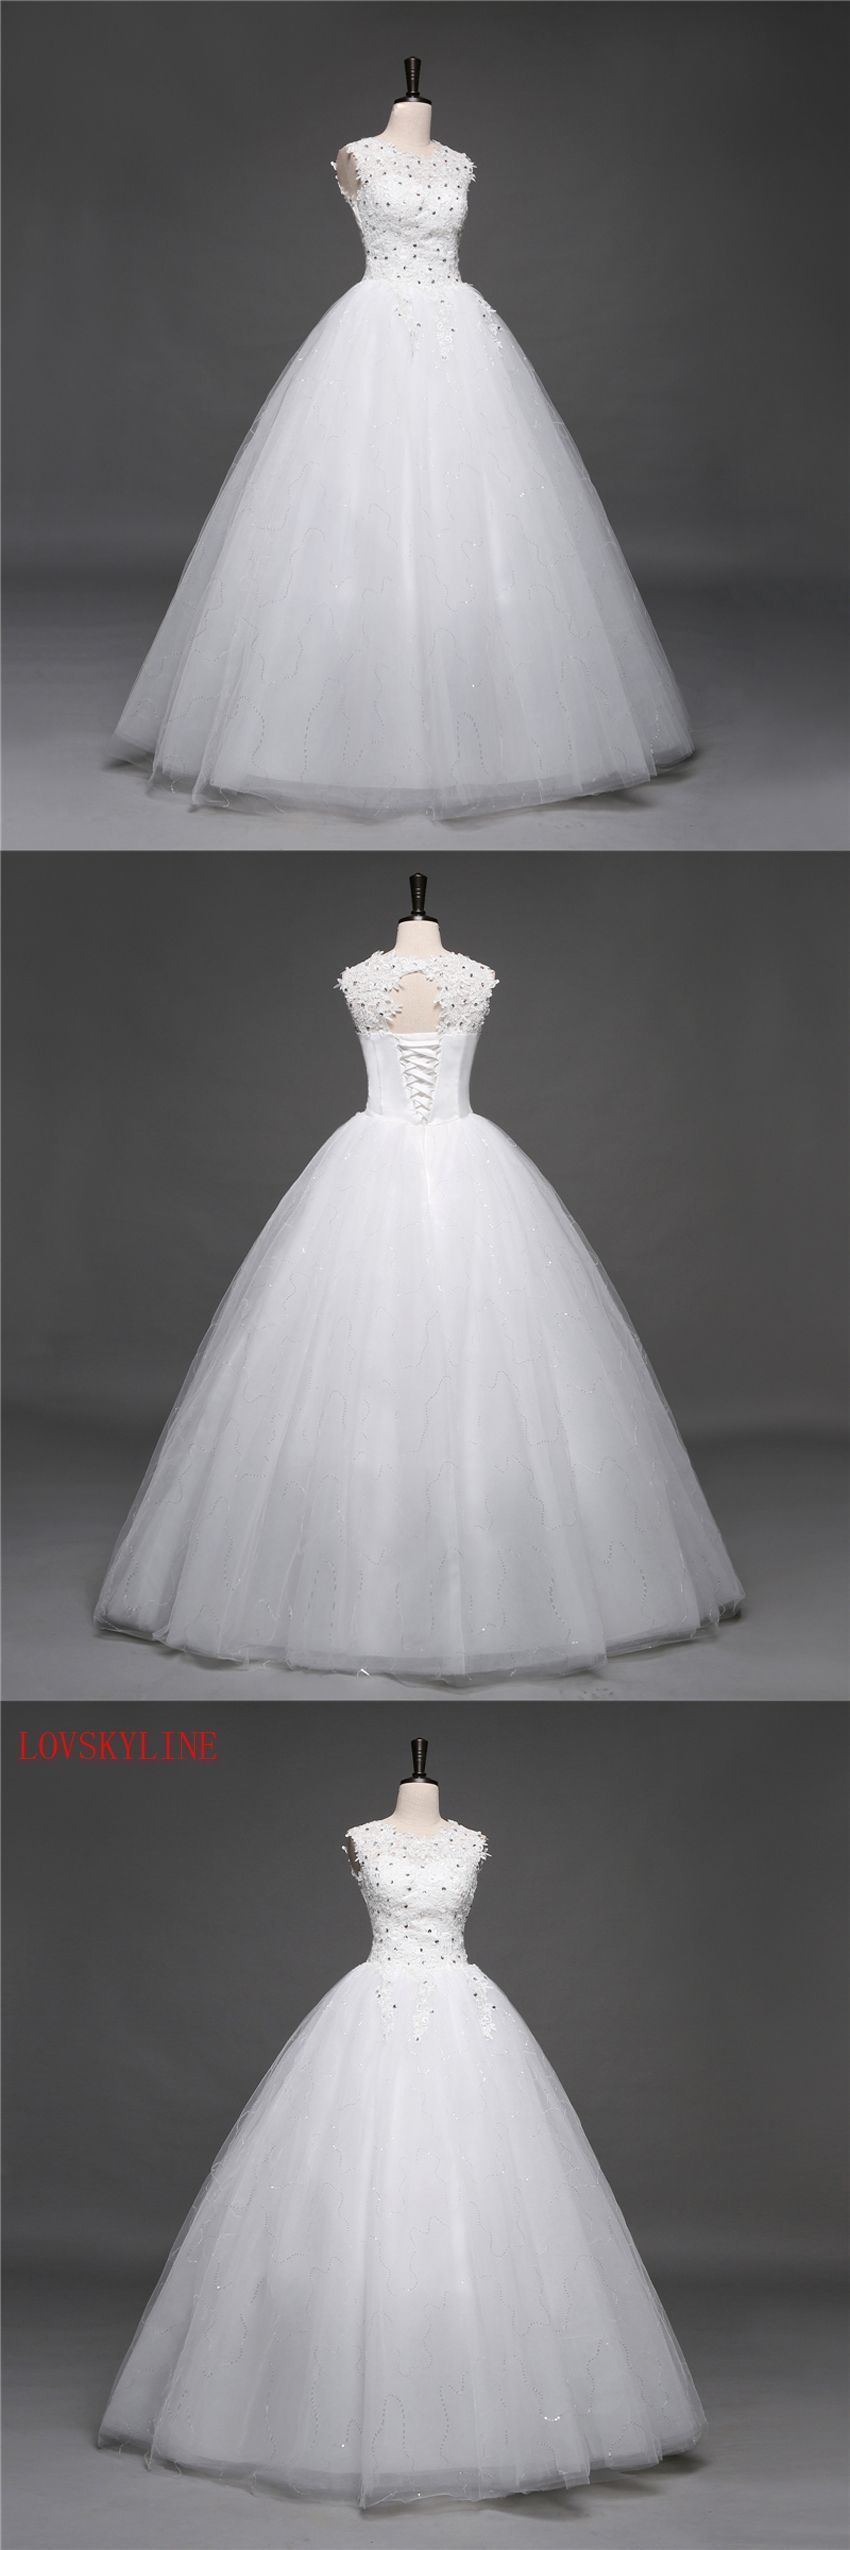 Lovskyline korean lace up ball gown top quality wedding dresses